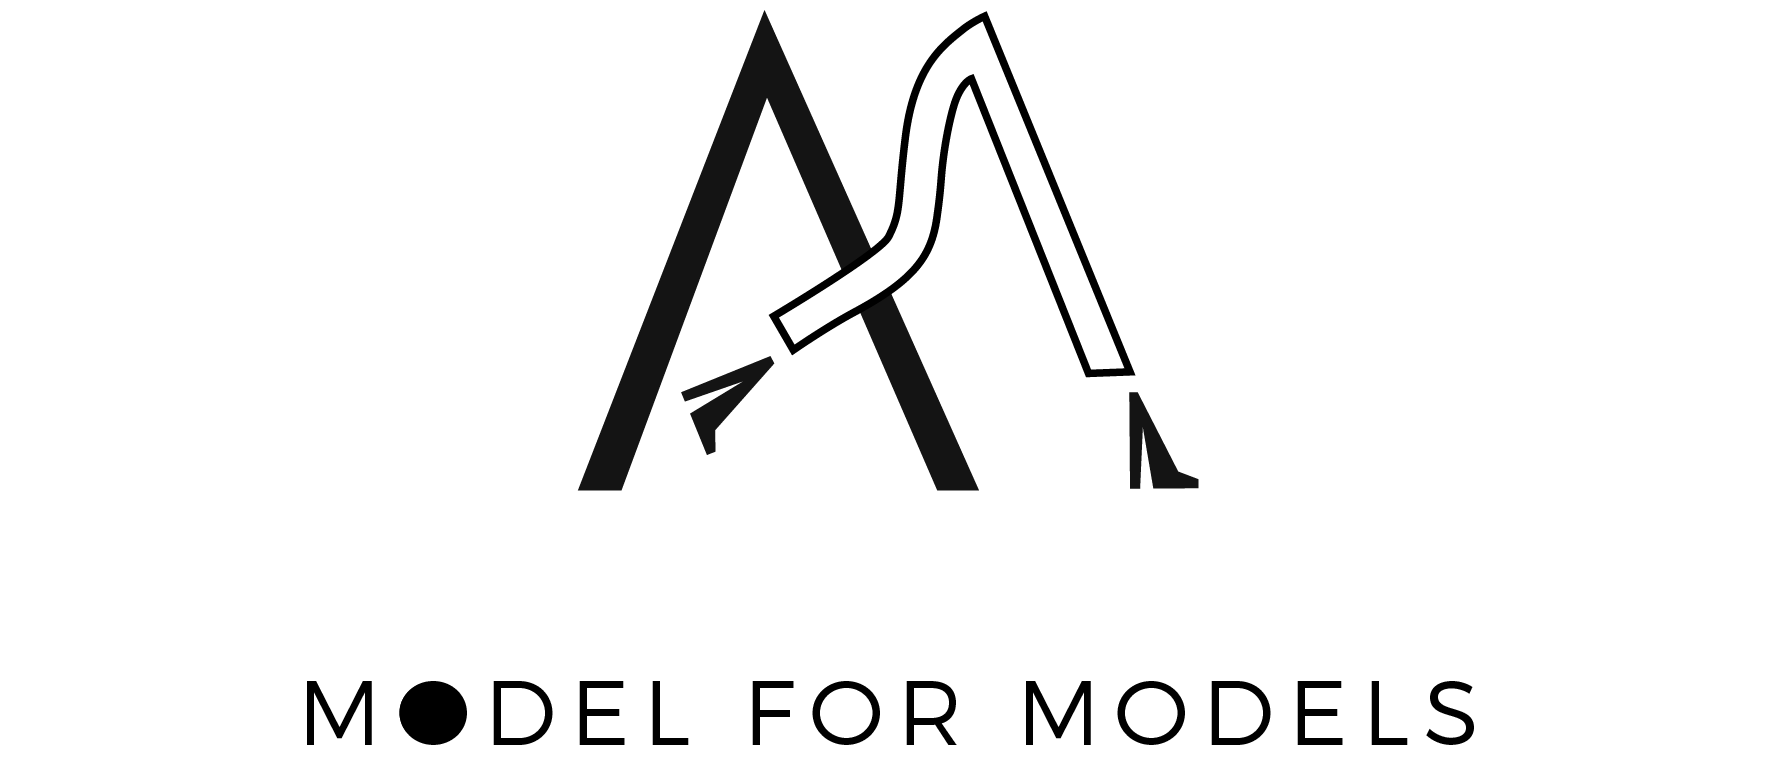 model-for-models-amsterdam-catwalk-personal-coaching-workshops-interactive-talks-modelling-techniques-women-tedx-skills-posing-guest-speakers-fashion-empowerment-jessica-gyasi-nimue-smit-empowering-women-through-fashion